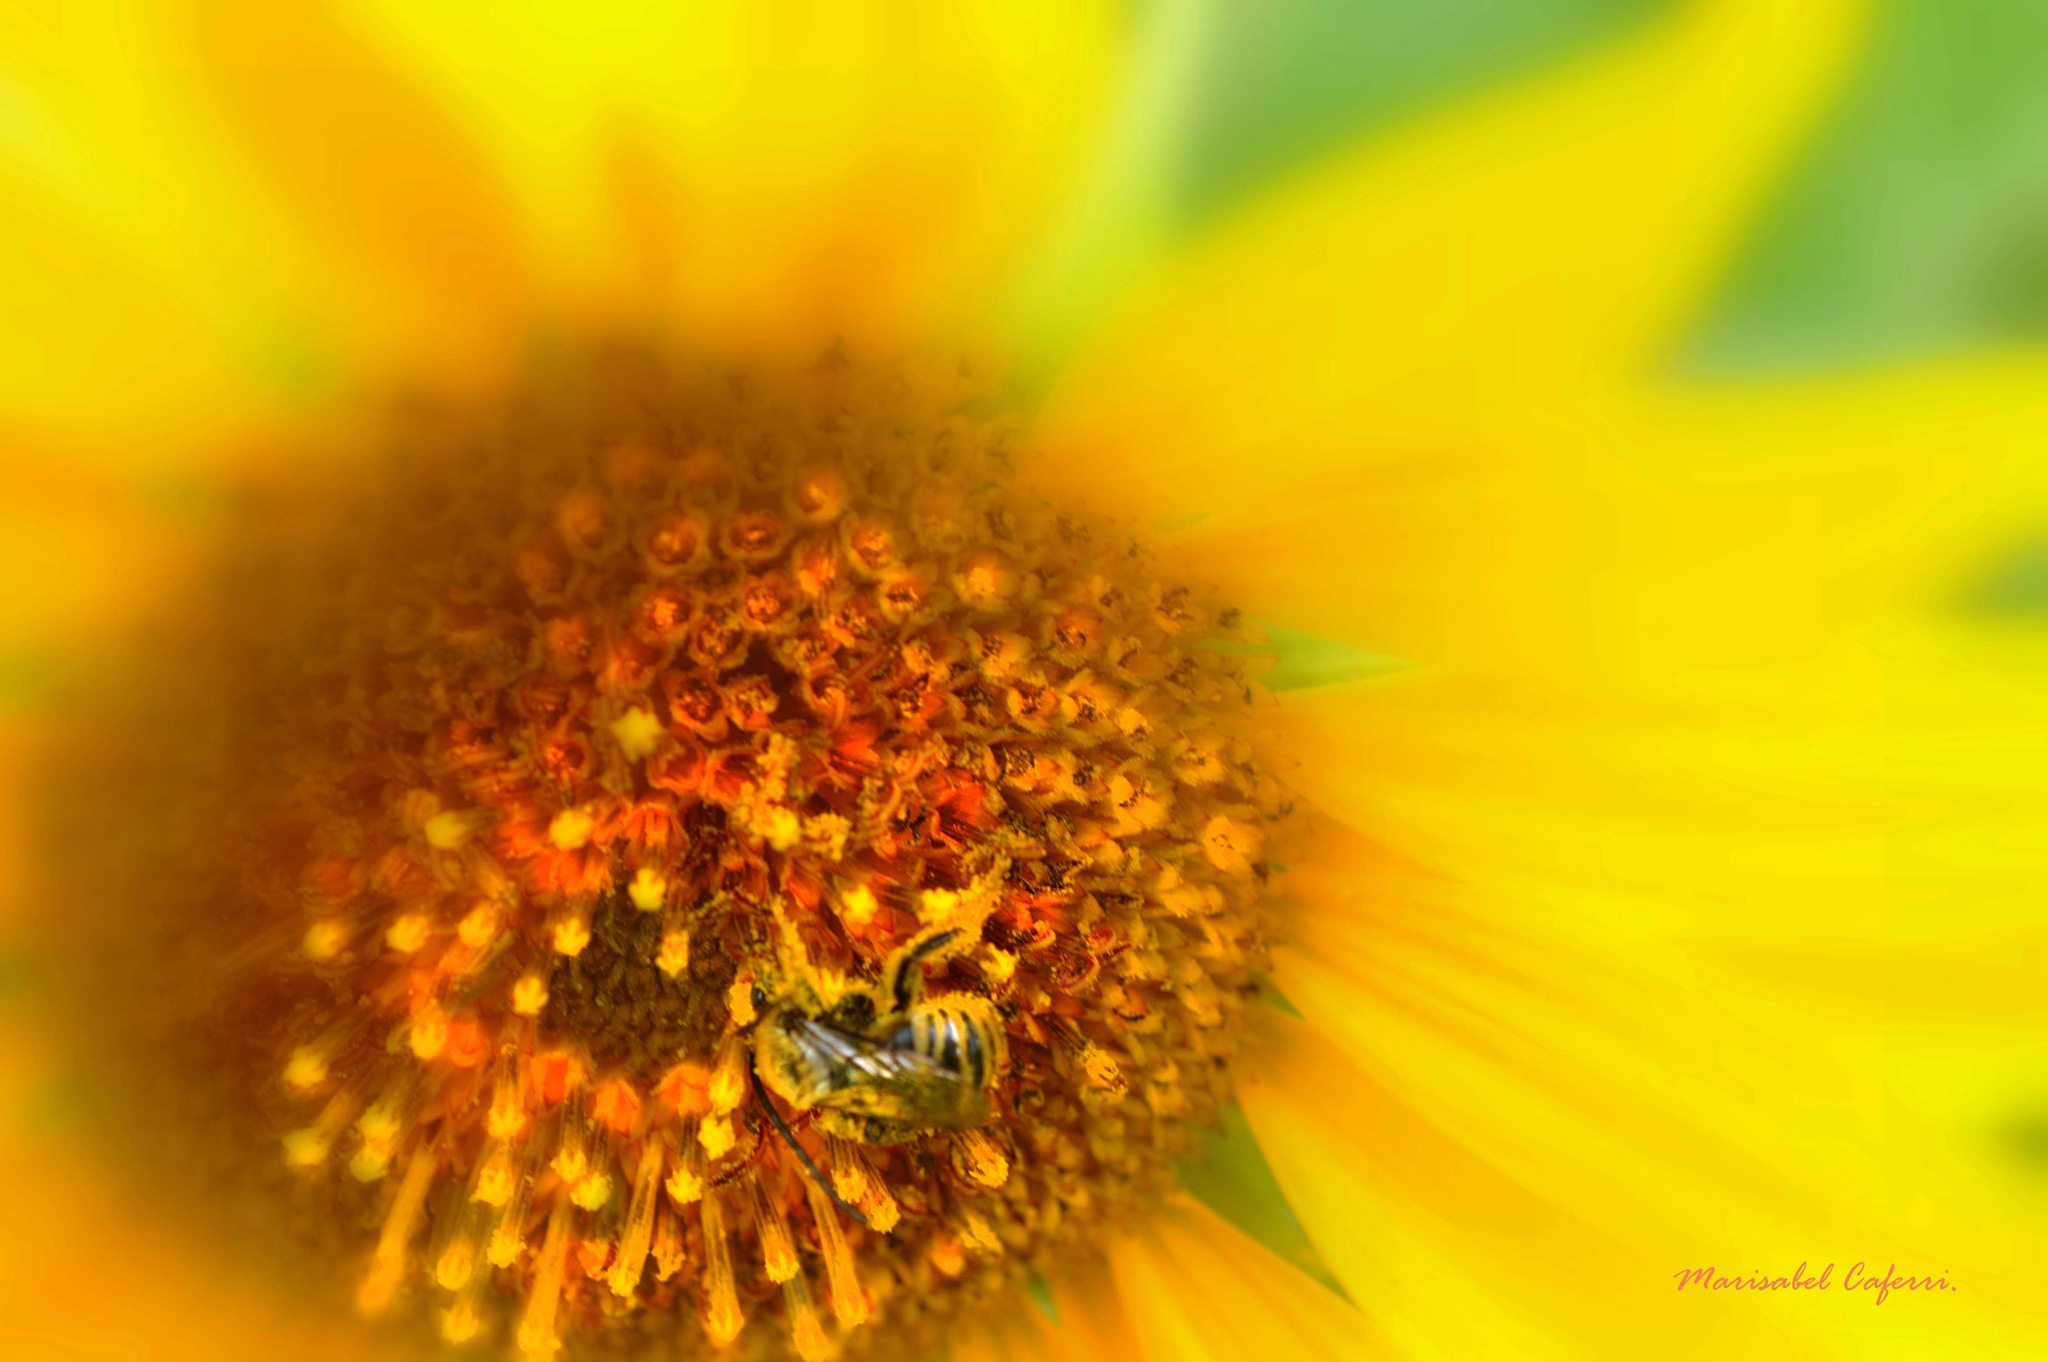 The sunflower and the bee. by marisabelcaferri